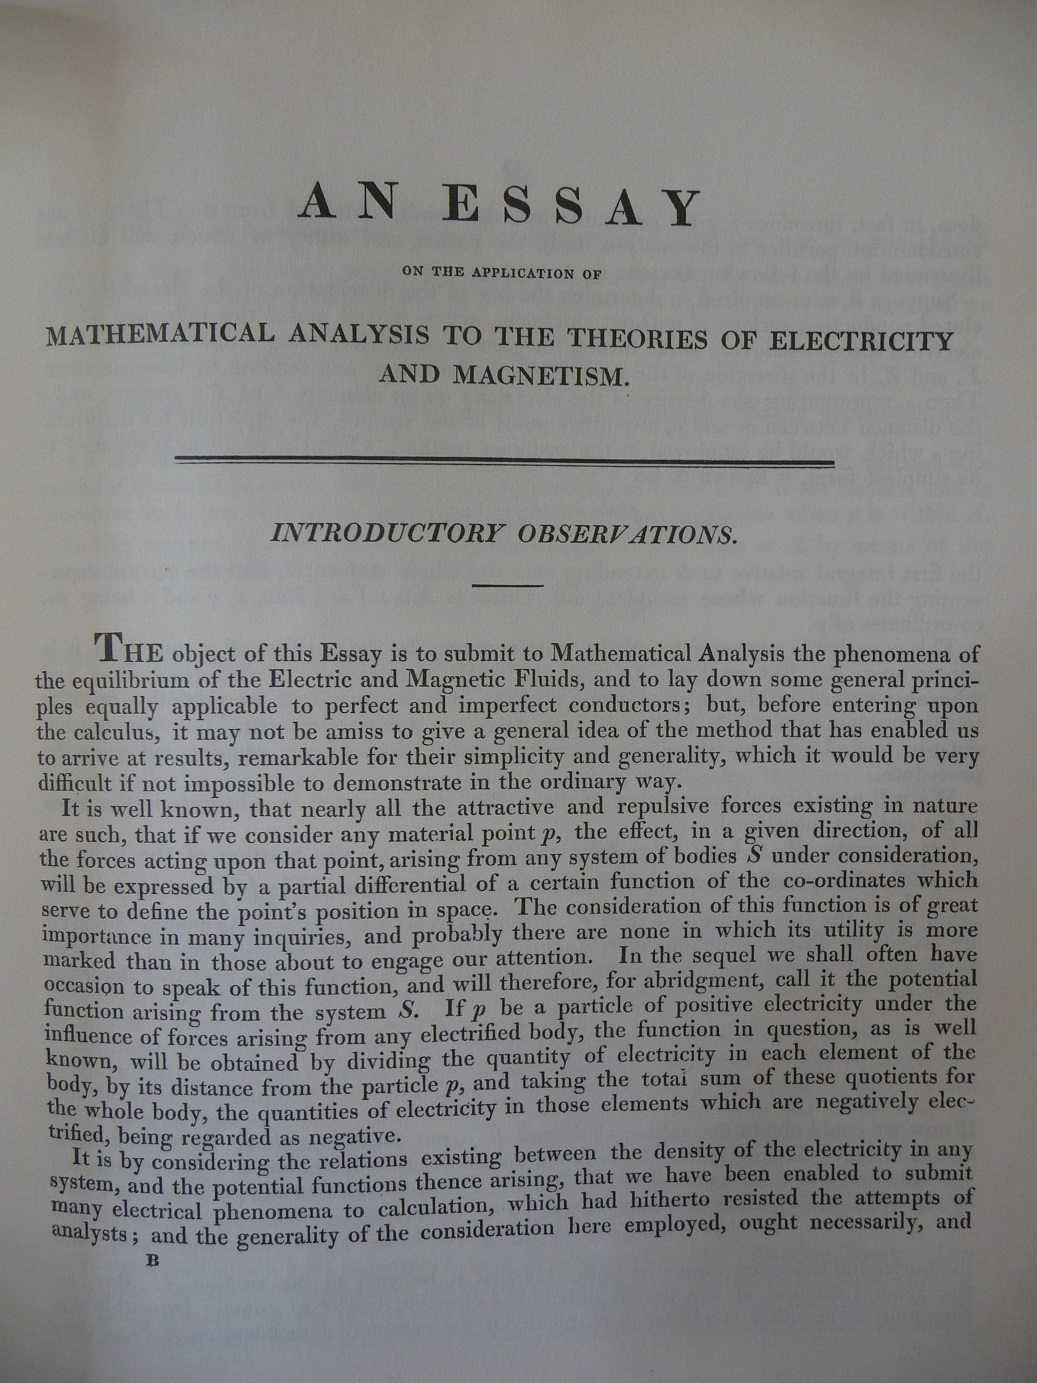 The introduction to the published essay.